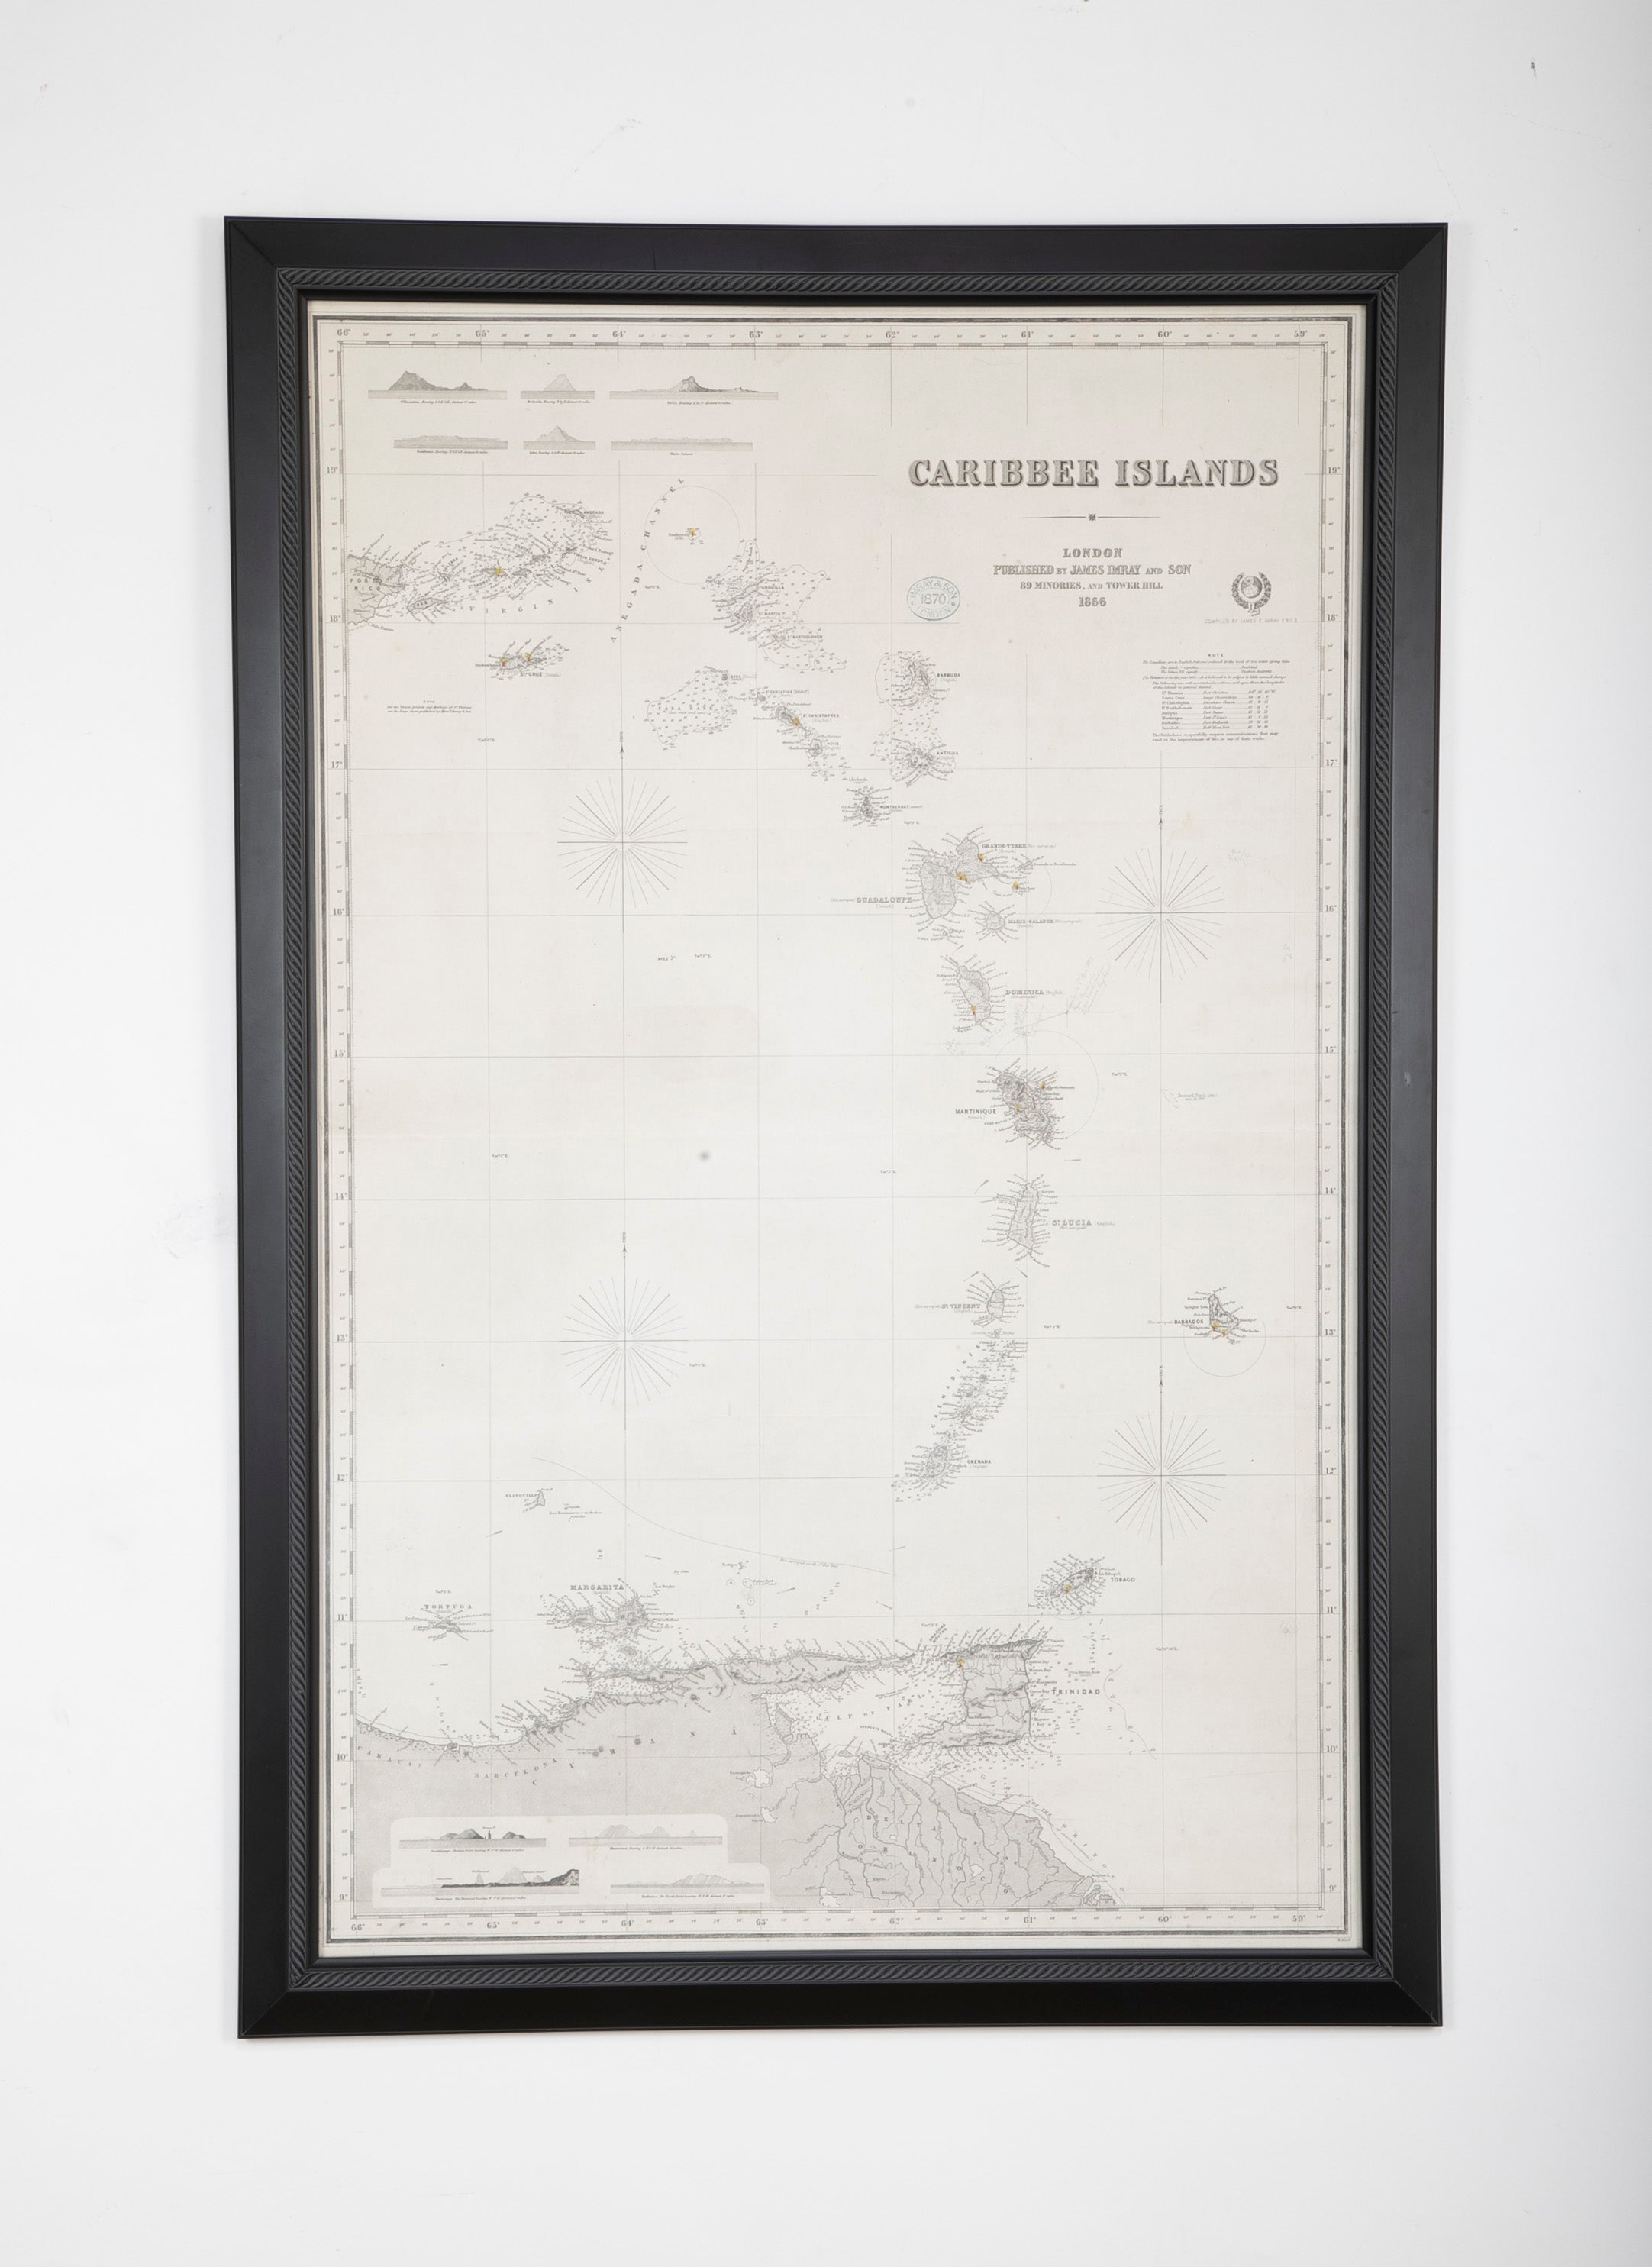 Rare Chart of the Caribbean Islands Published by James Imray & Son, London, 1866